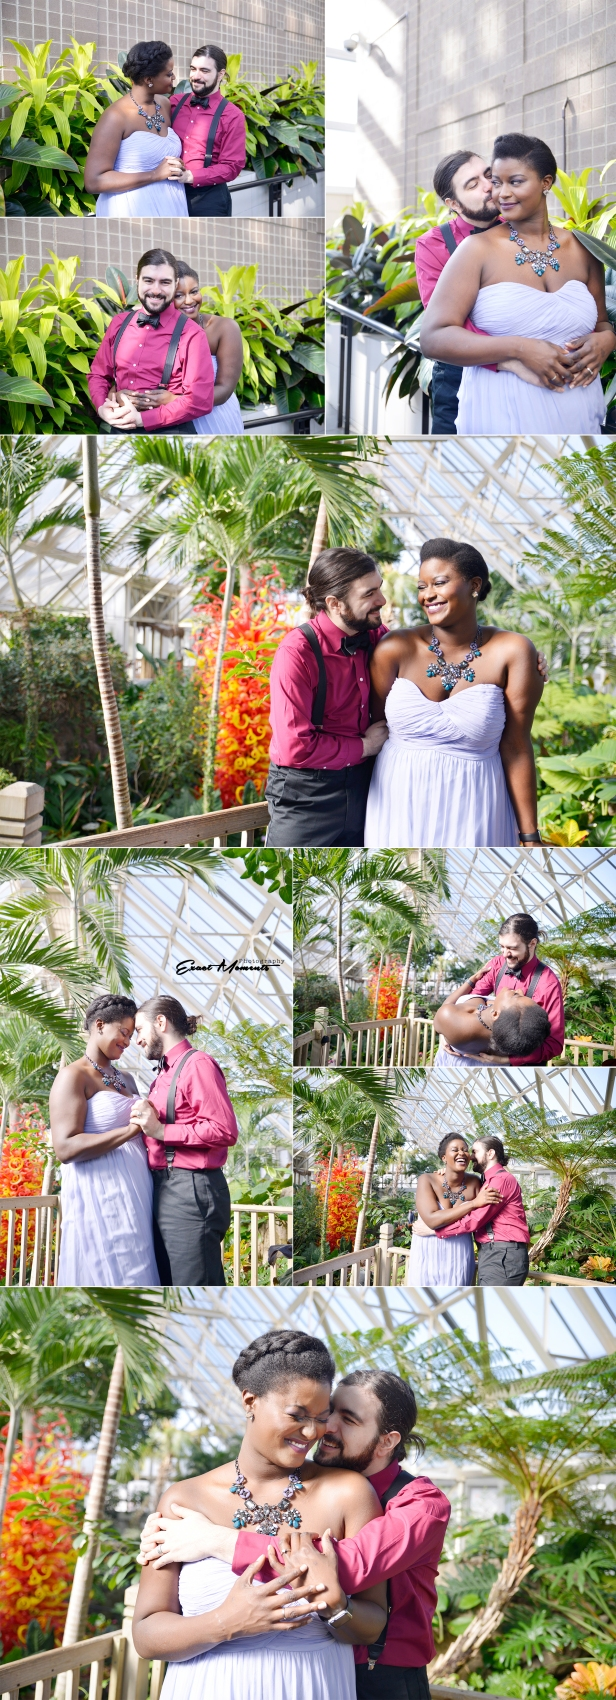 1 Franklin Park Conservatory photo session copy